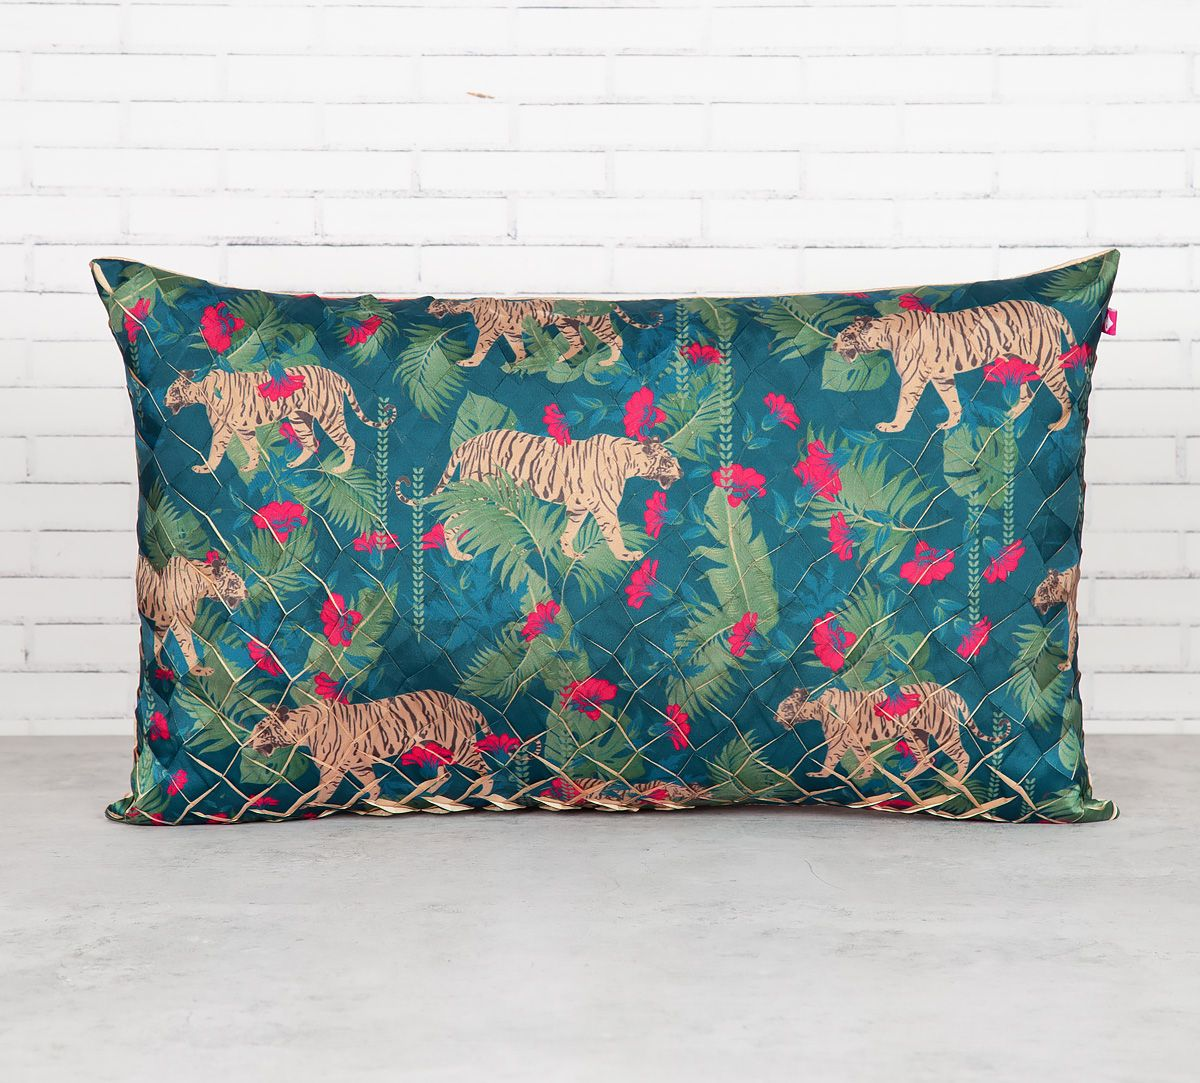 India Circus Tropical Tiger Decorative Scale Cushion Cover